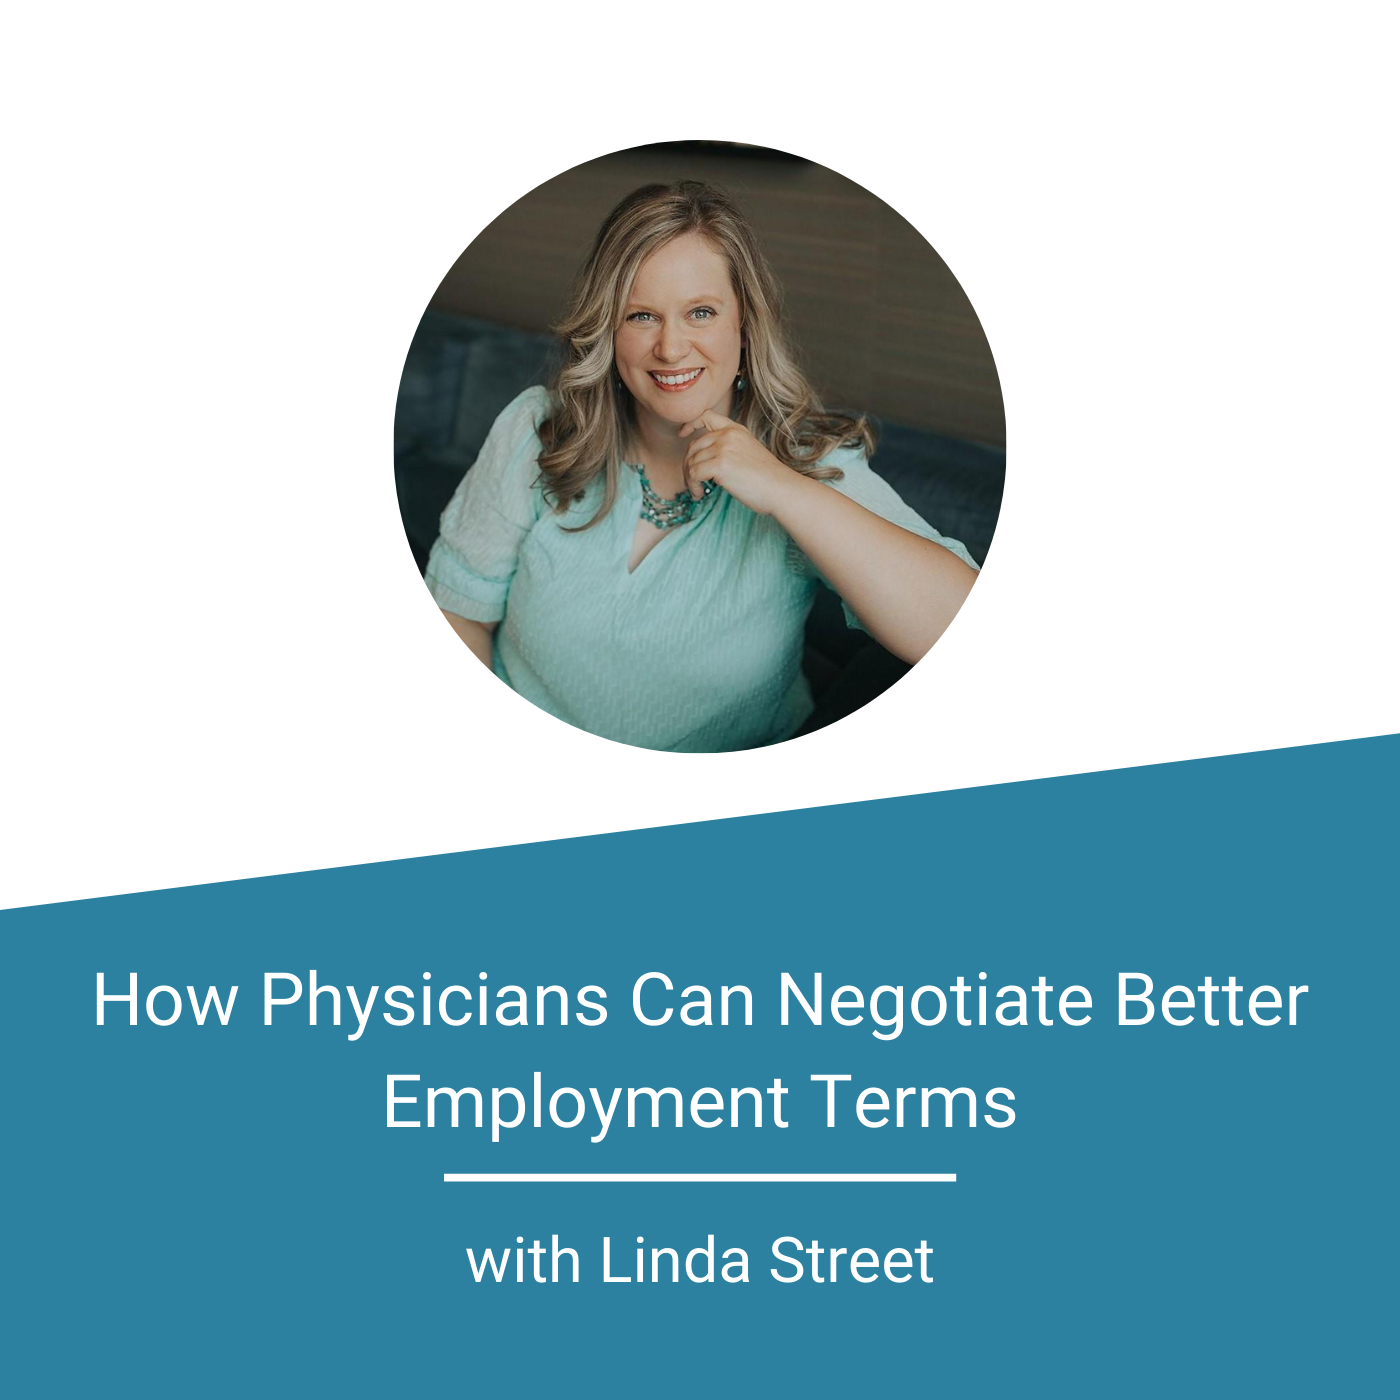 Featured Image - How Physicians Can Negotiate Better Employment Terms